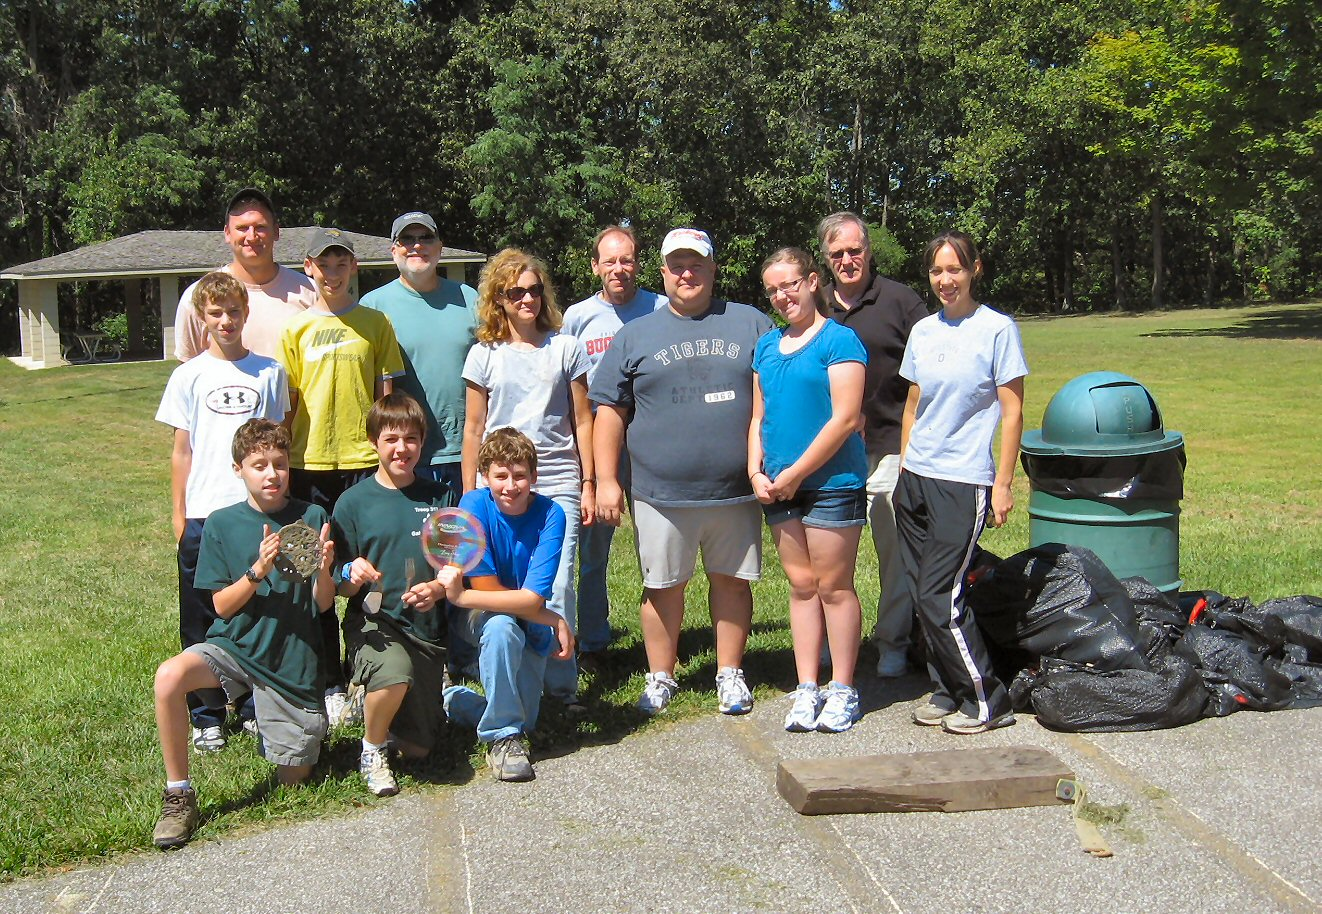 LitterCleanUp2010